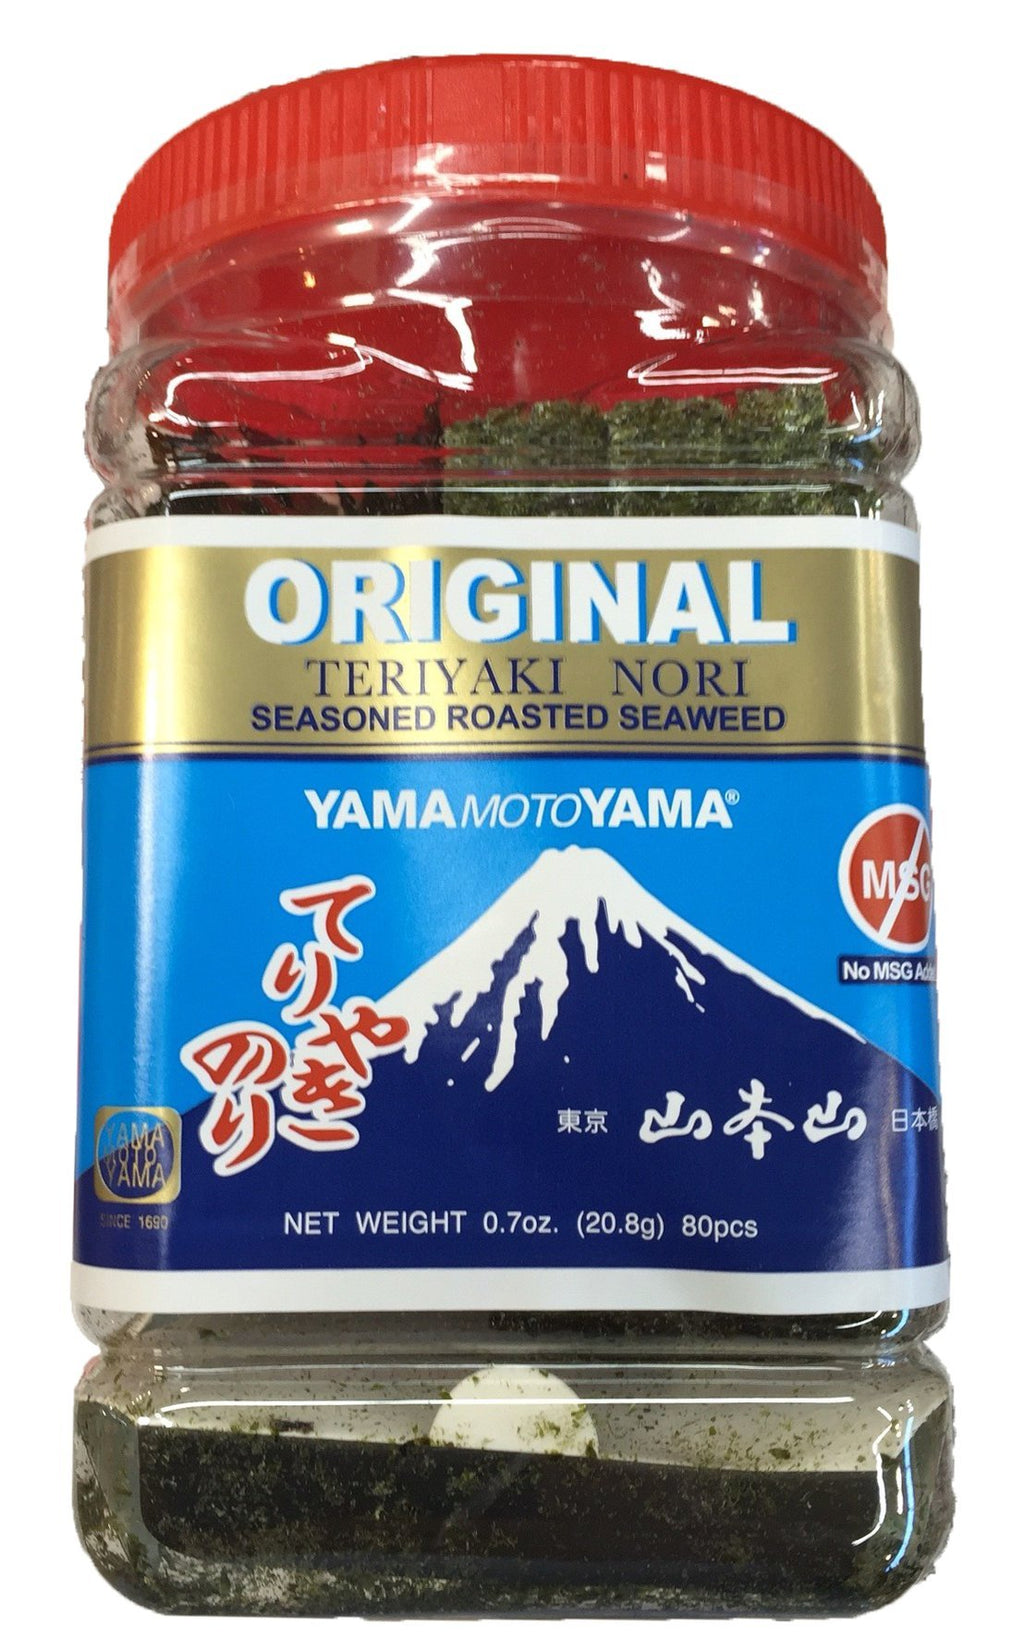 Teriyaki Nori Seasoned Roasted Seaweed (Original) 1 Jar 0.7oz